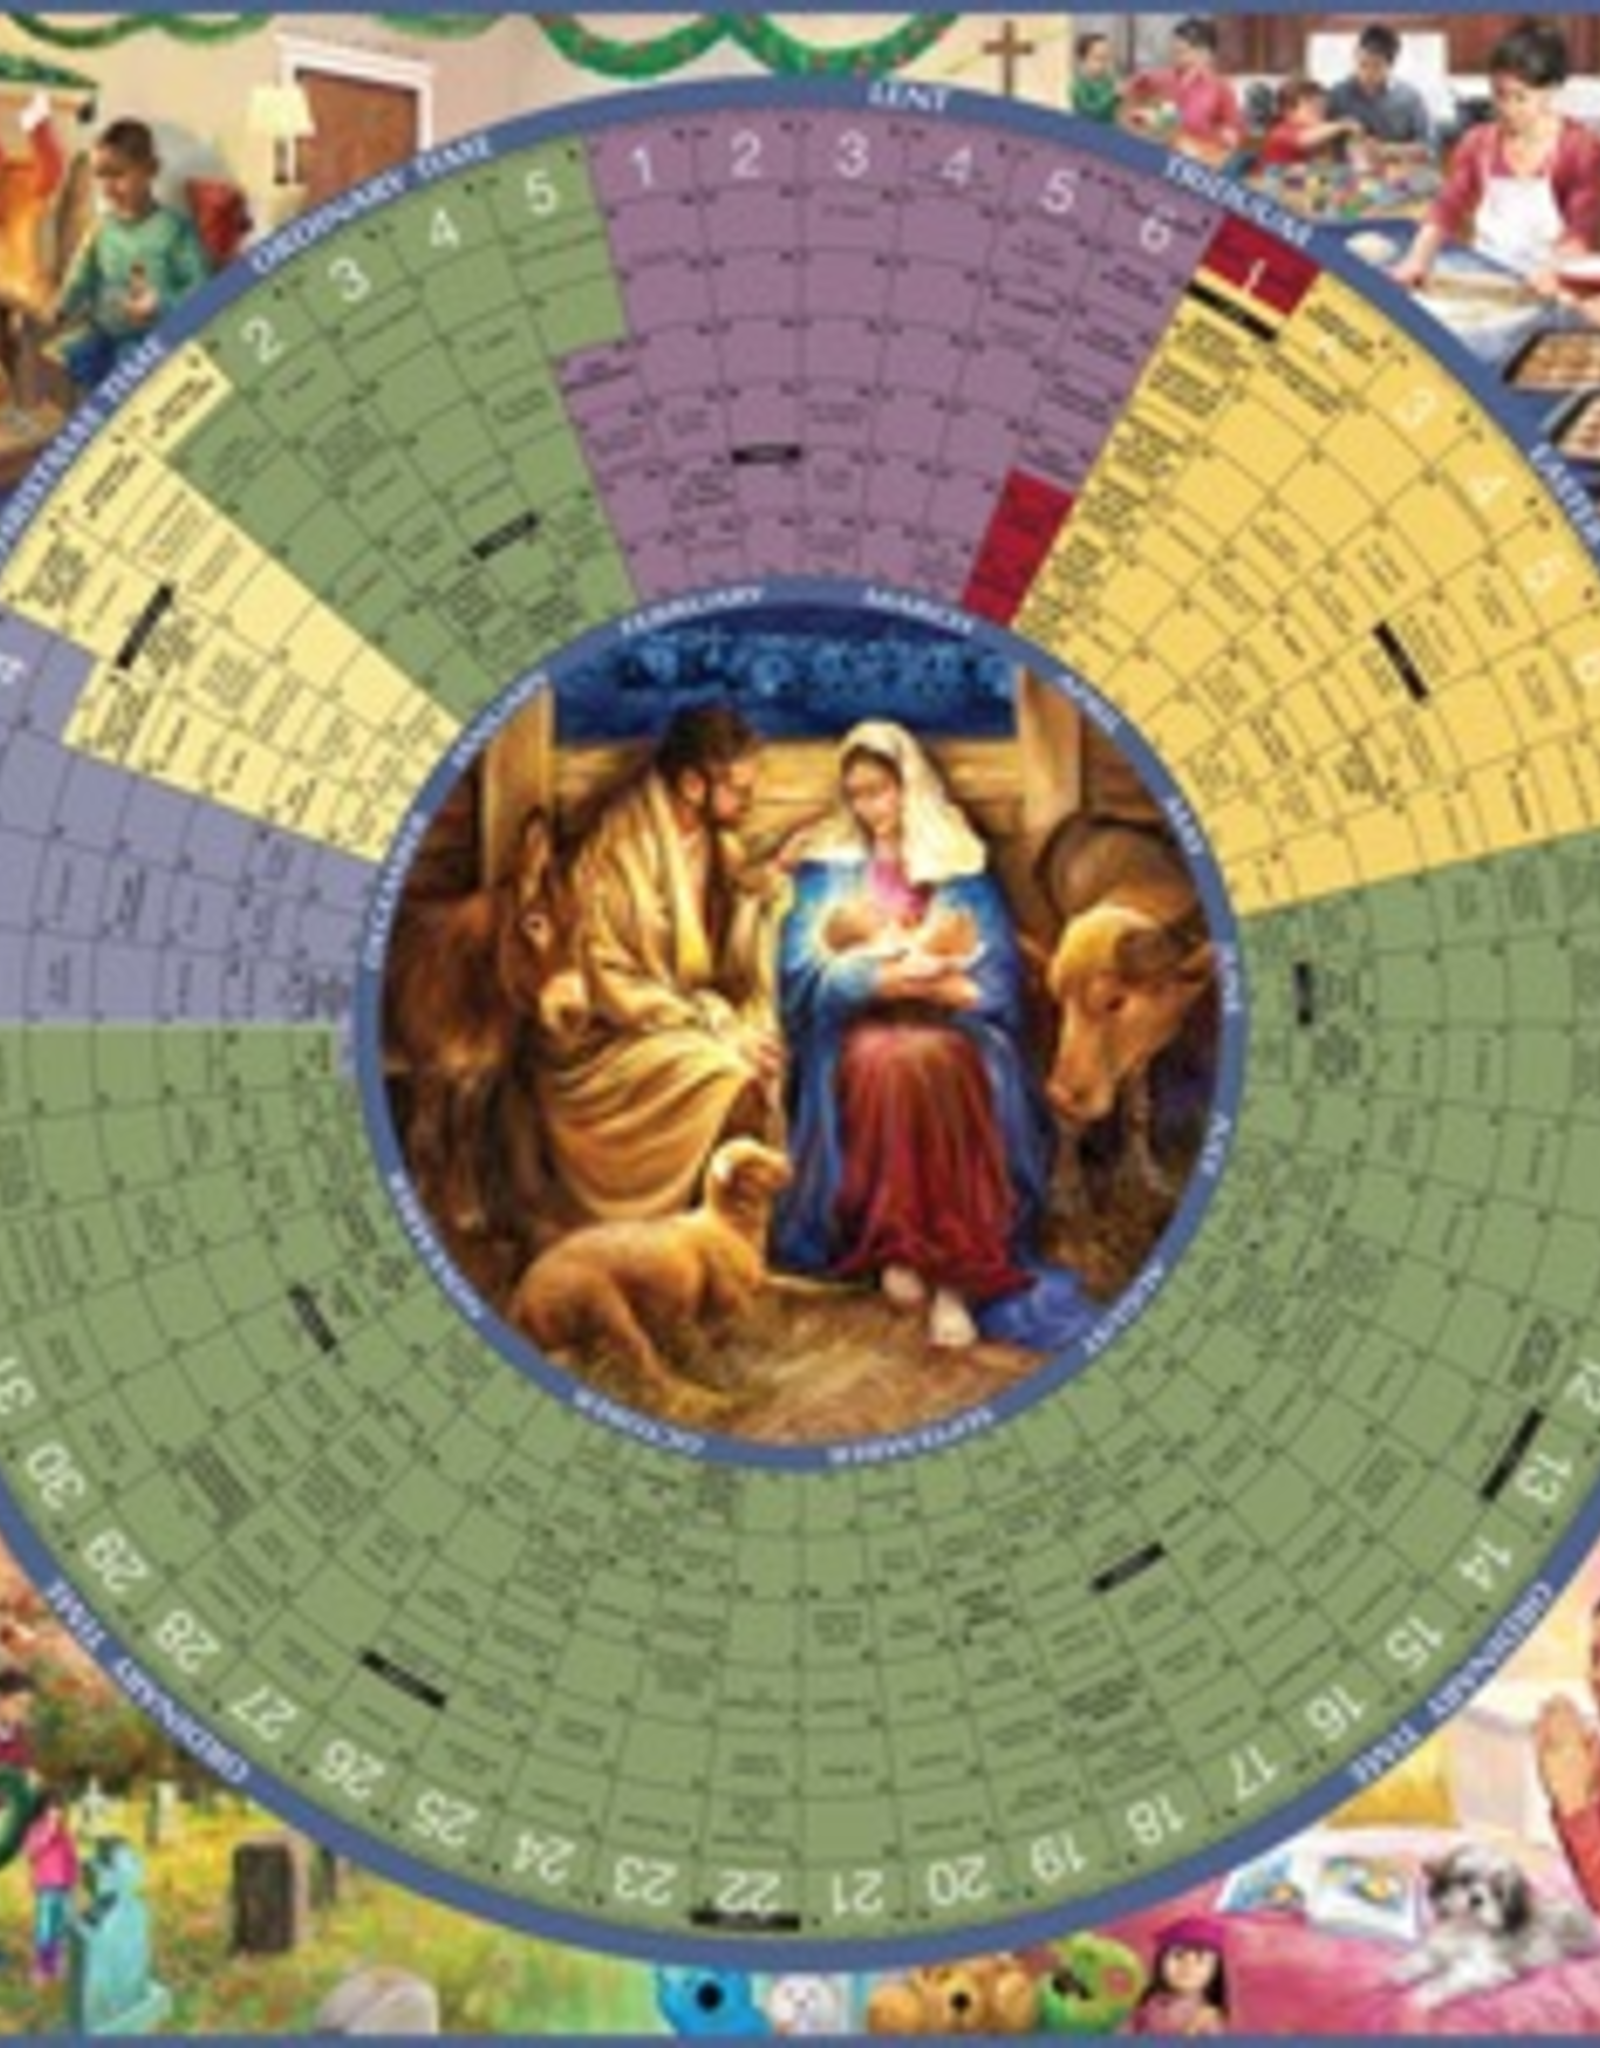 Liturgical Training Press Year of Grace Liturgical Calendar 2013 Laminated Poster,  Illustrated by Brock Nicol